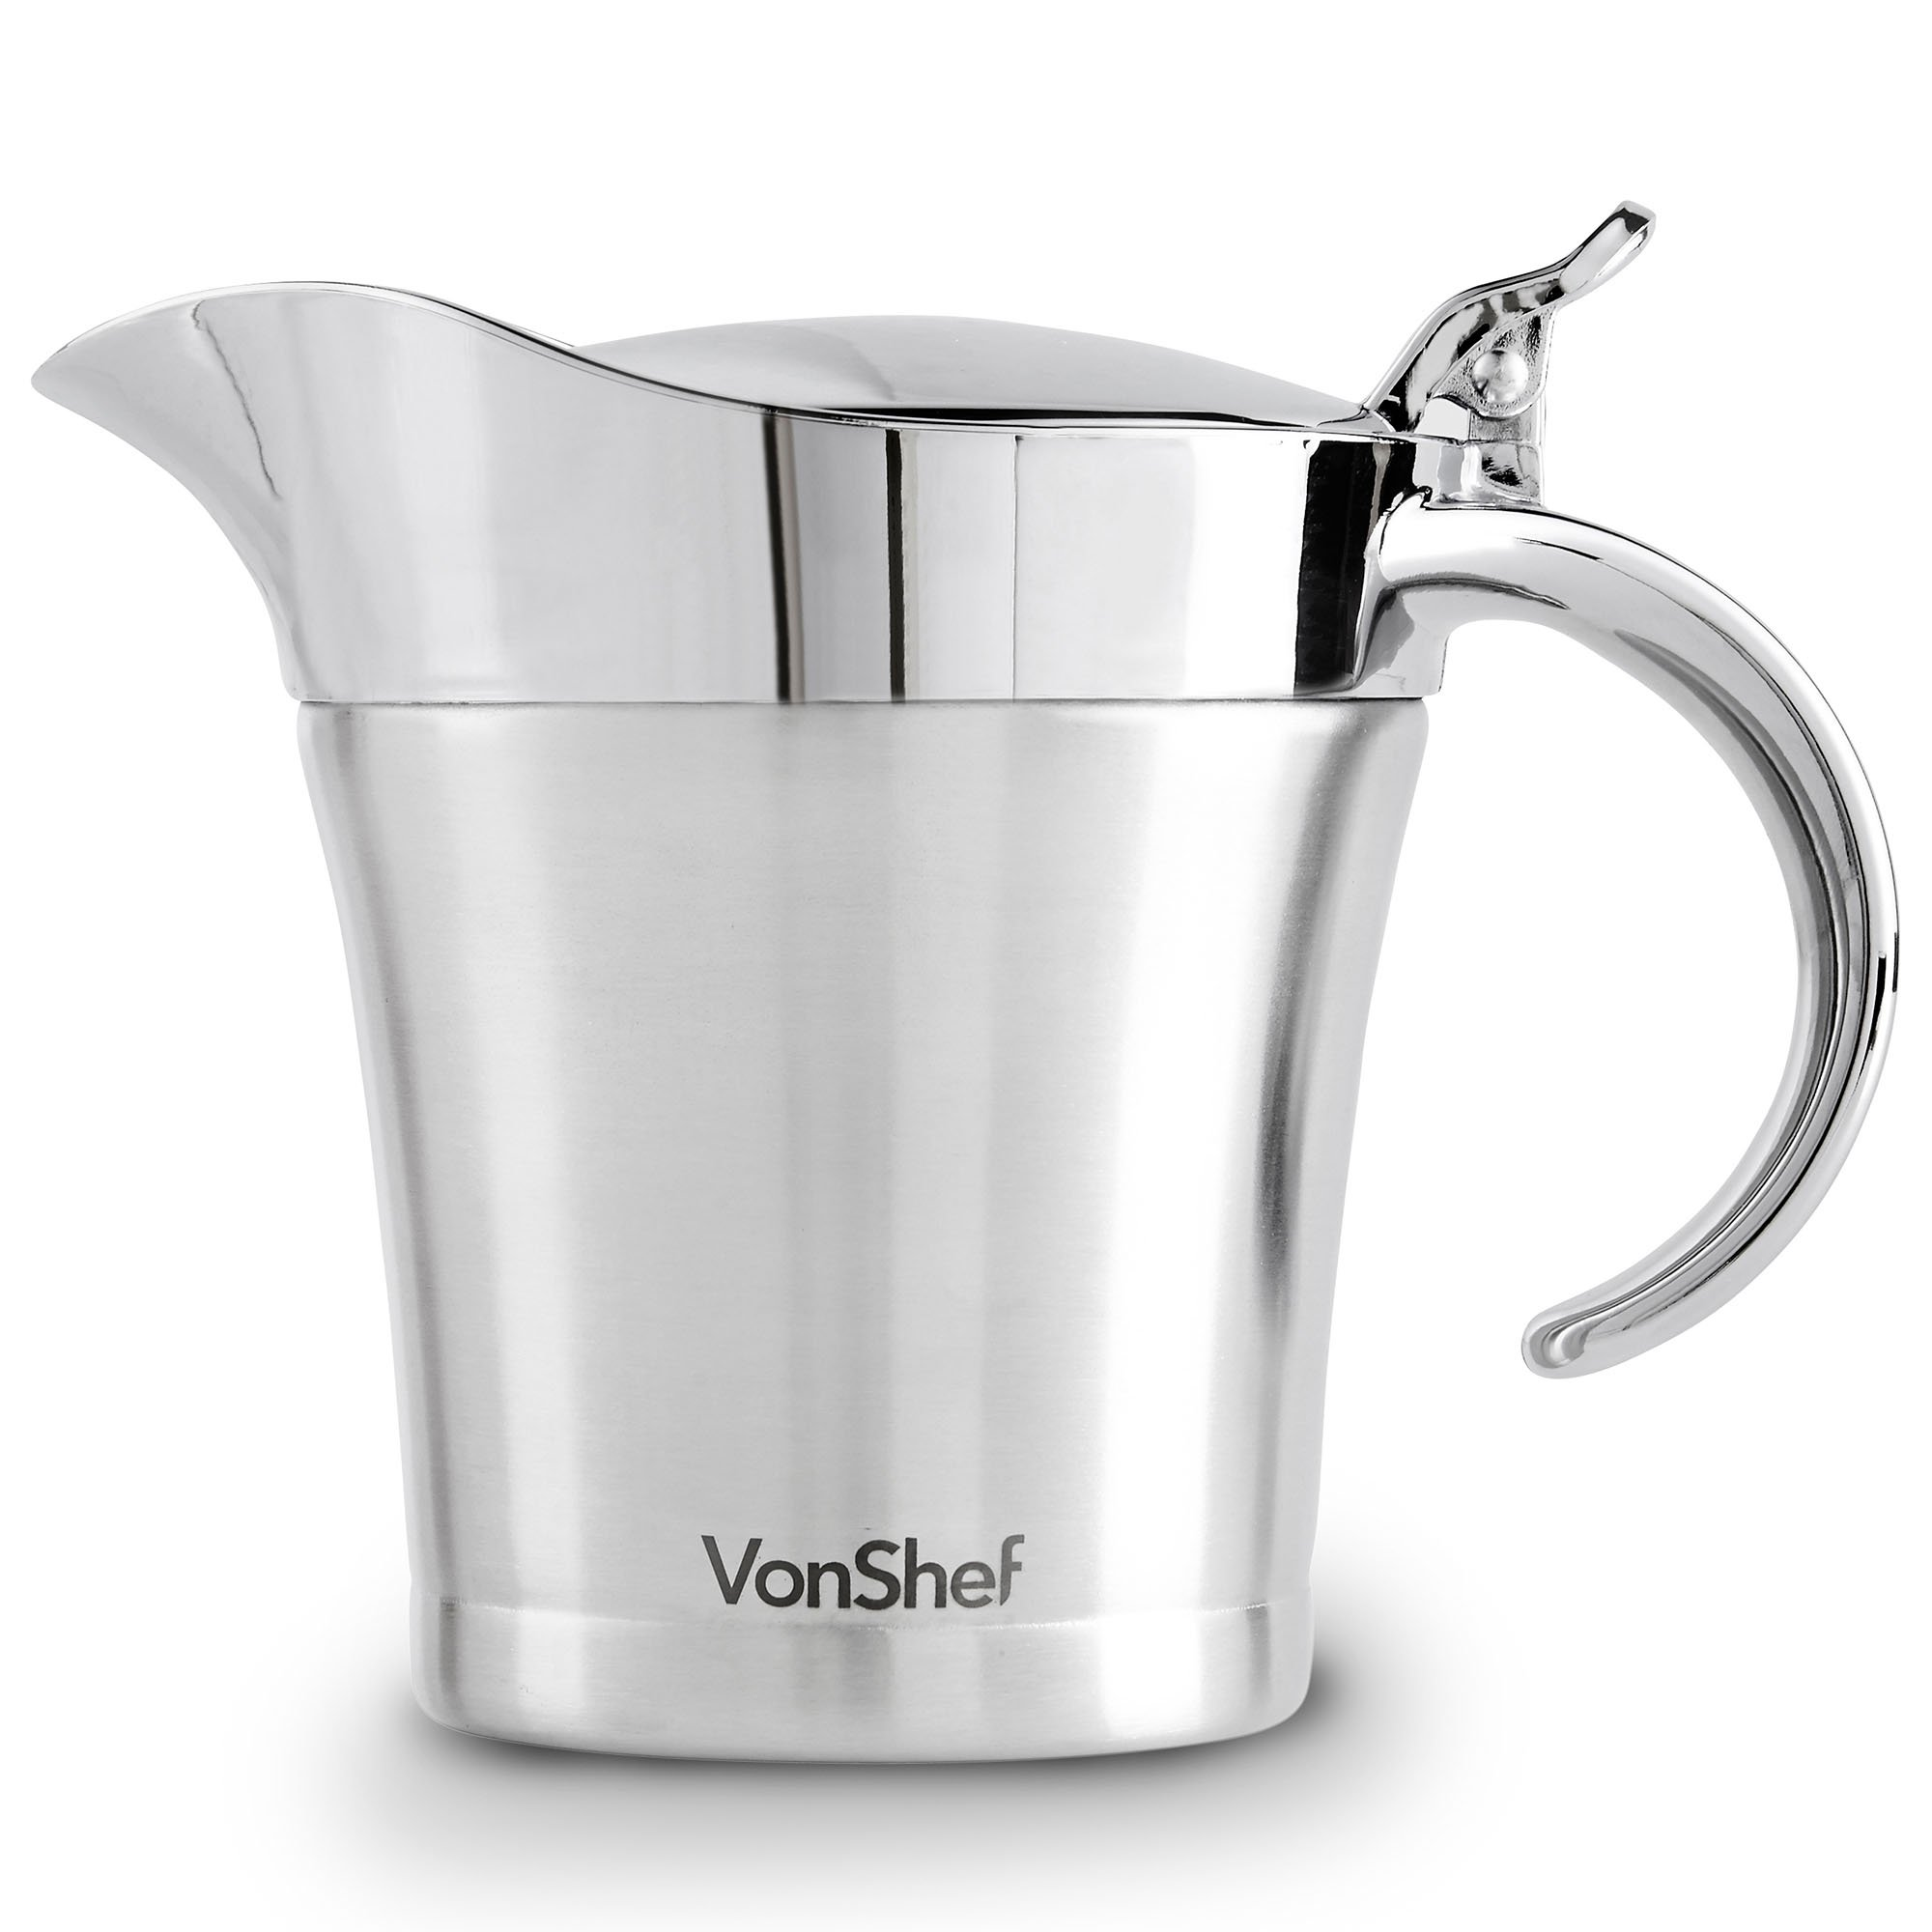 VonShef Double Wall Insulated Gravy Boat and Sauce Jug with Hinged Lid, Stainless Steel, 17 Oz 500ml Capacity